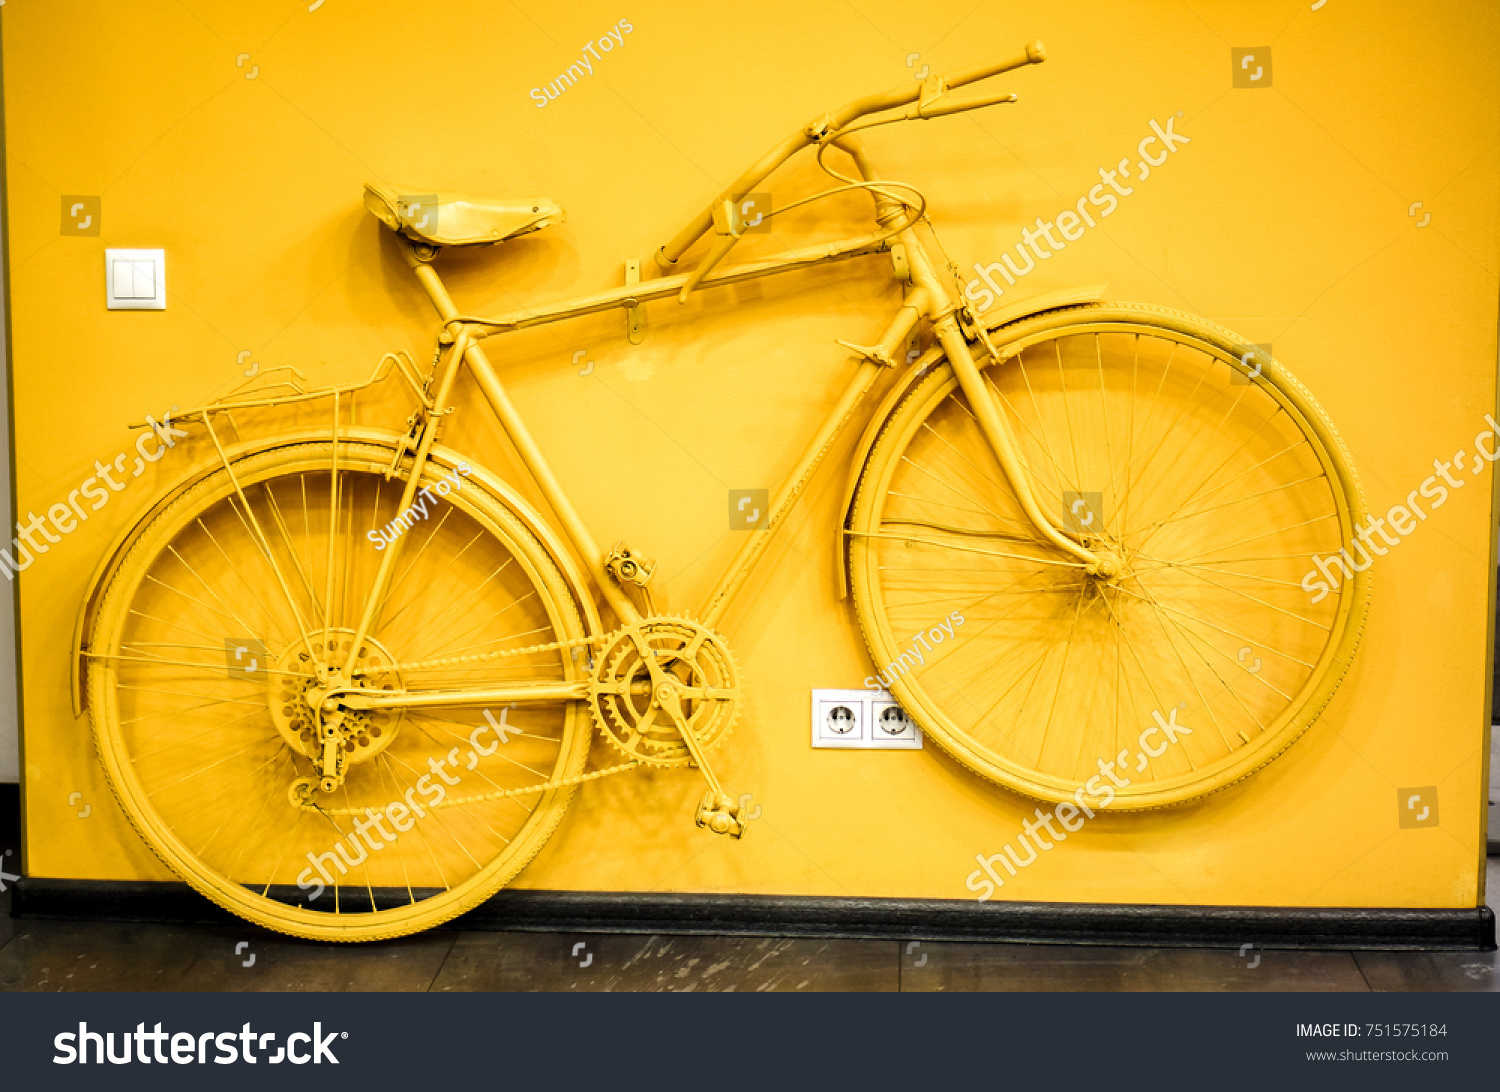 Golden Yellow Bicycle Decoration Power Socket Stock Photo (Edit Now ...